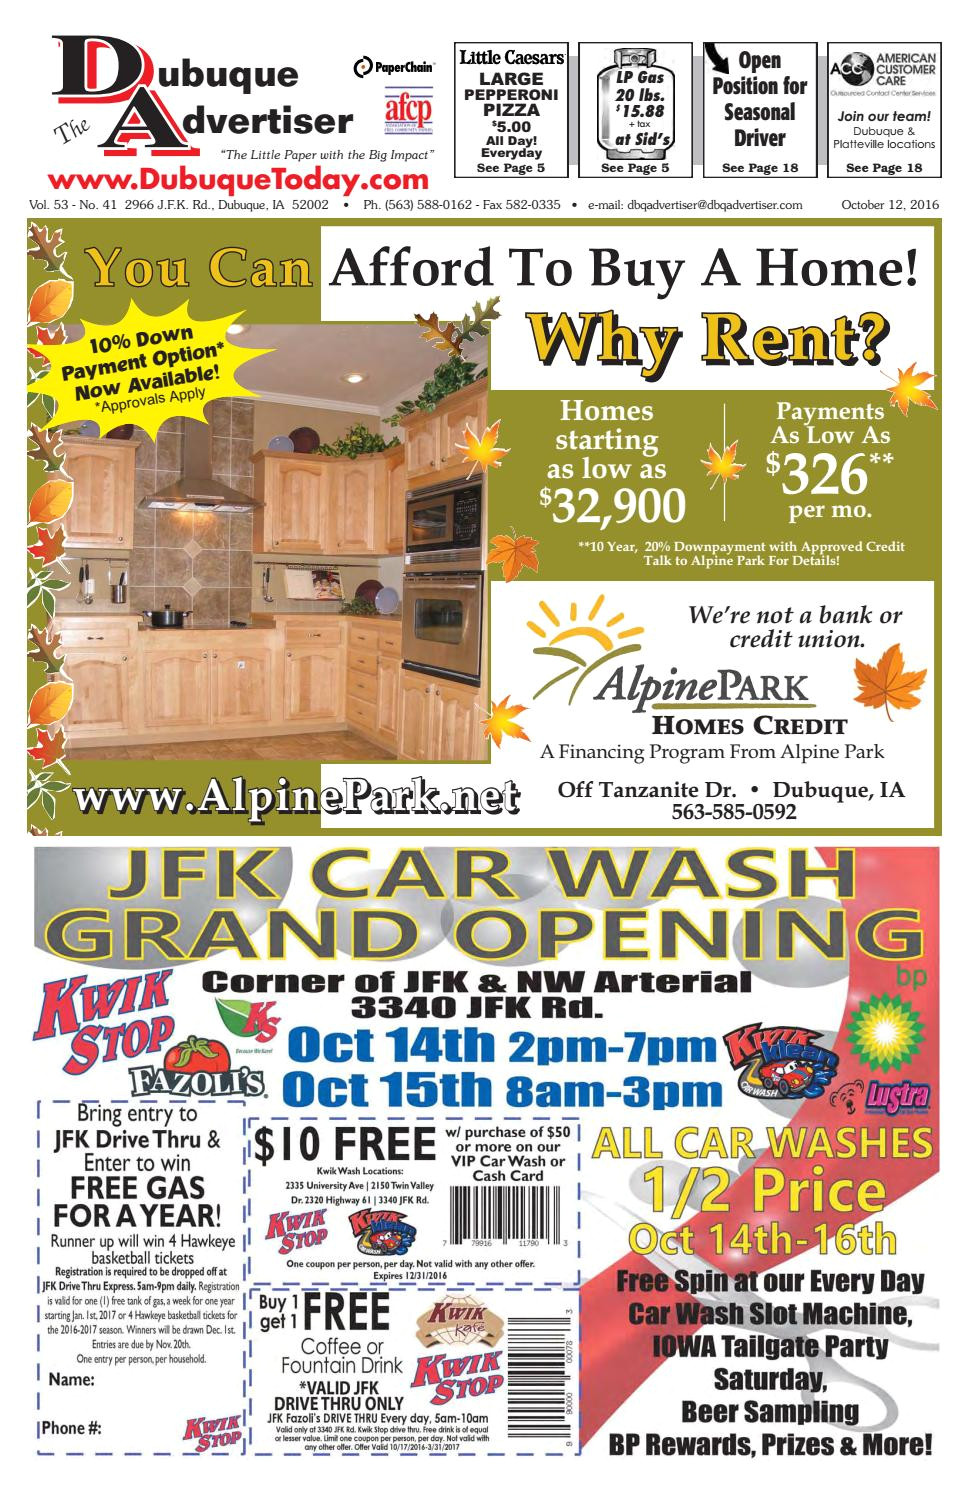 Midwest Rug Co Springfield Mo the Dubuque Advertiser October 12 2016 by the Dubuque Advertiser